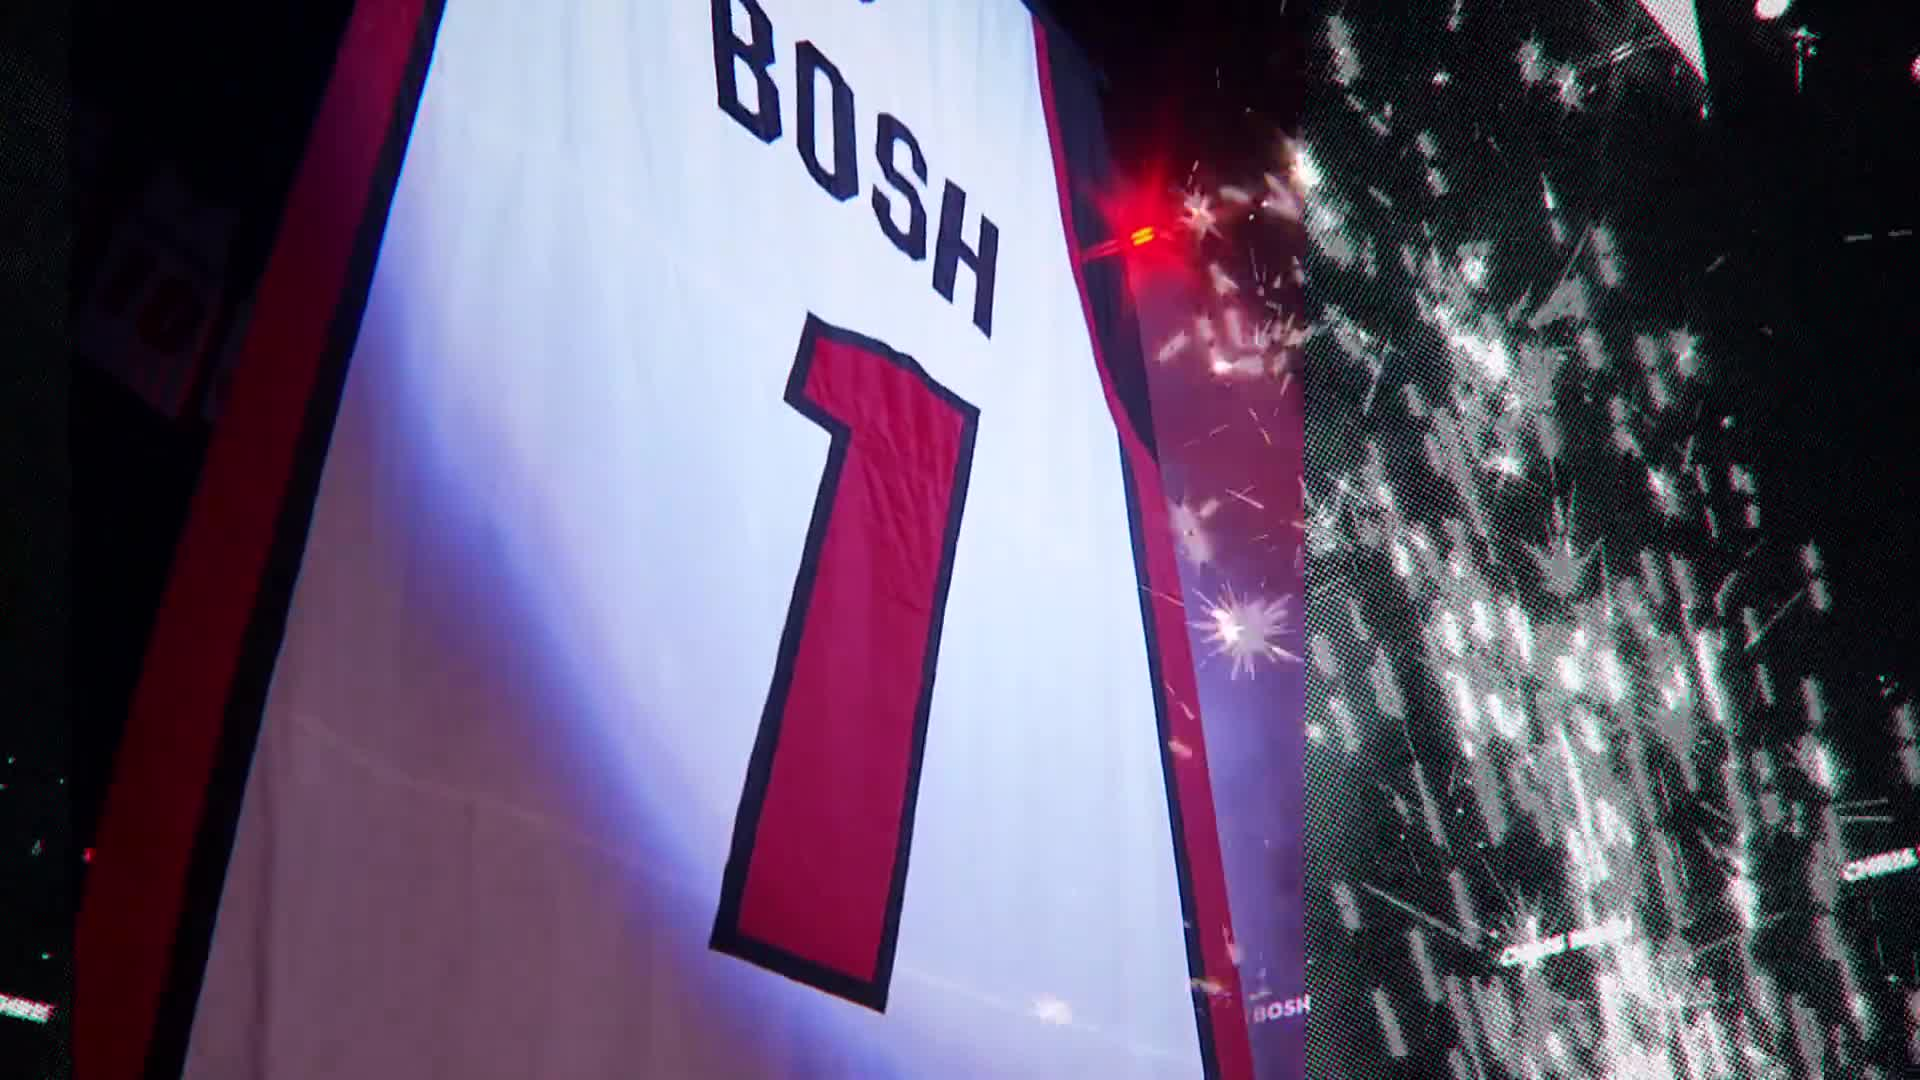 Congratulations, Chris Bosh! From Your HEAT Family